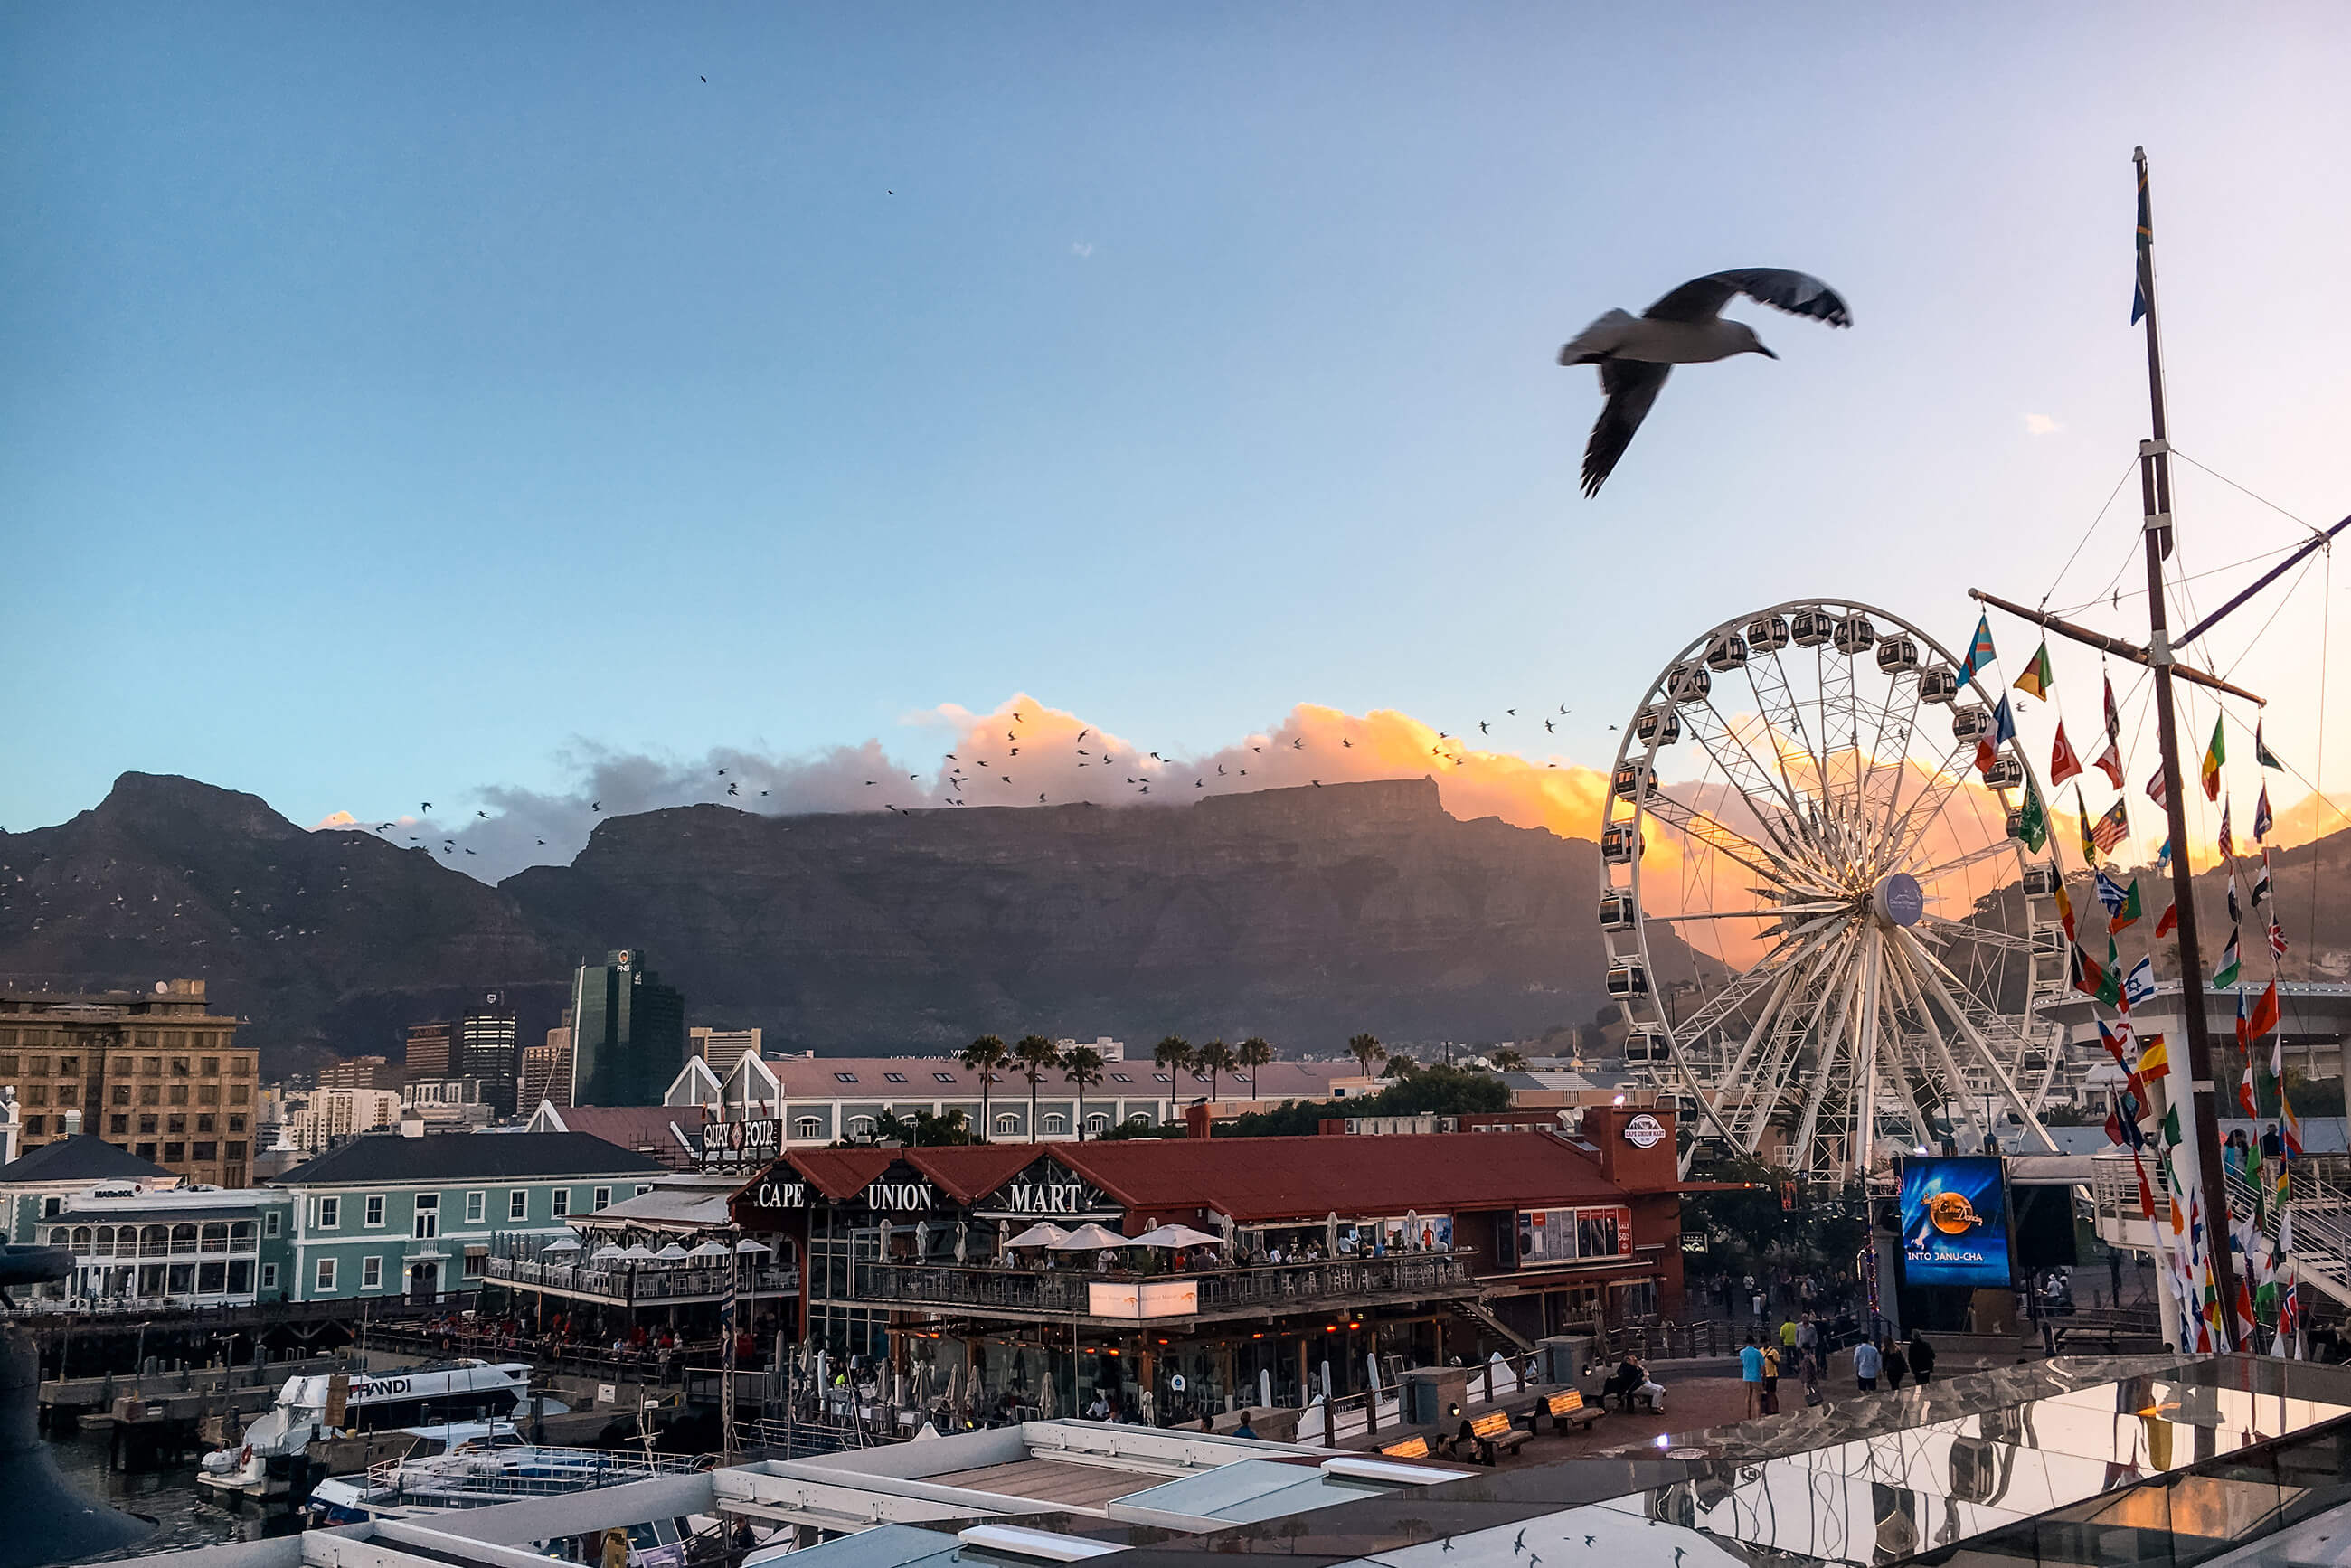 https://bubo.sk/uploads/galleries/16007/jar_capetown_waterfront_xdck9926-30.jpg